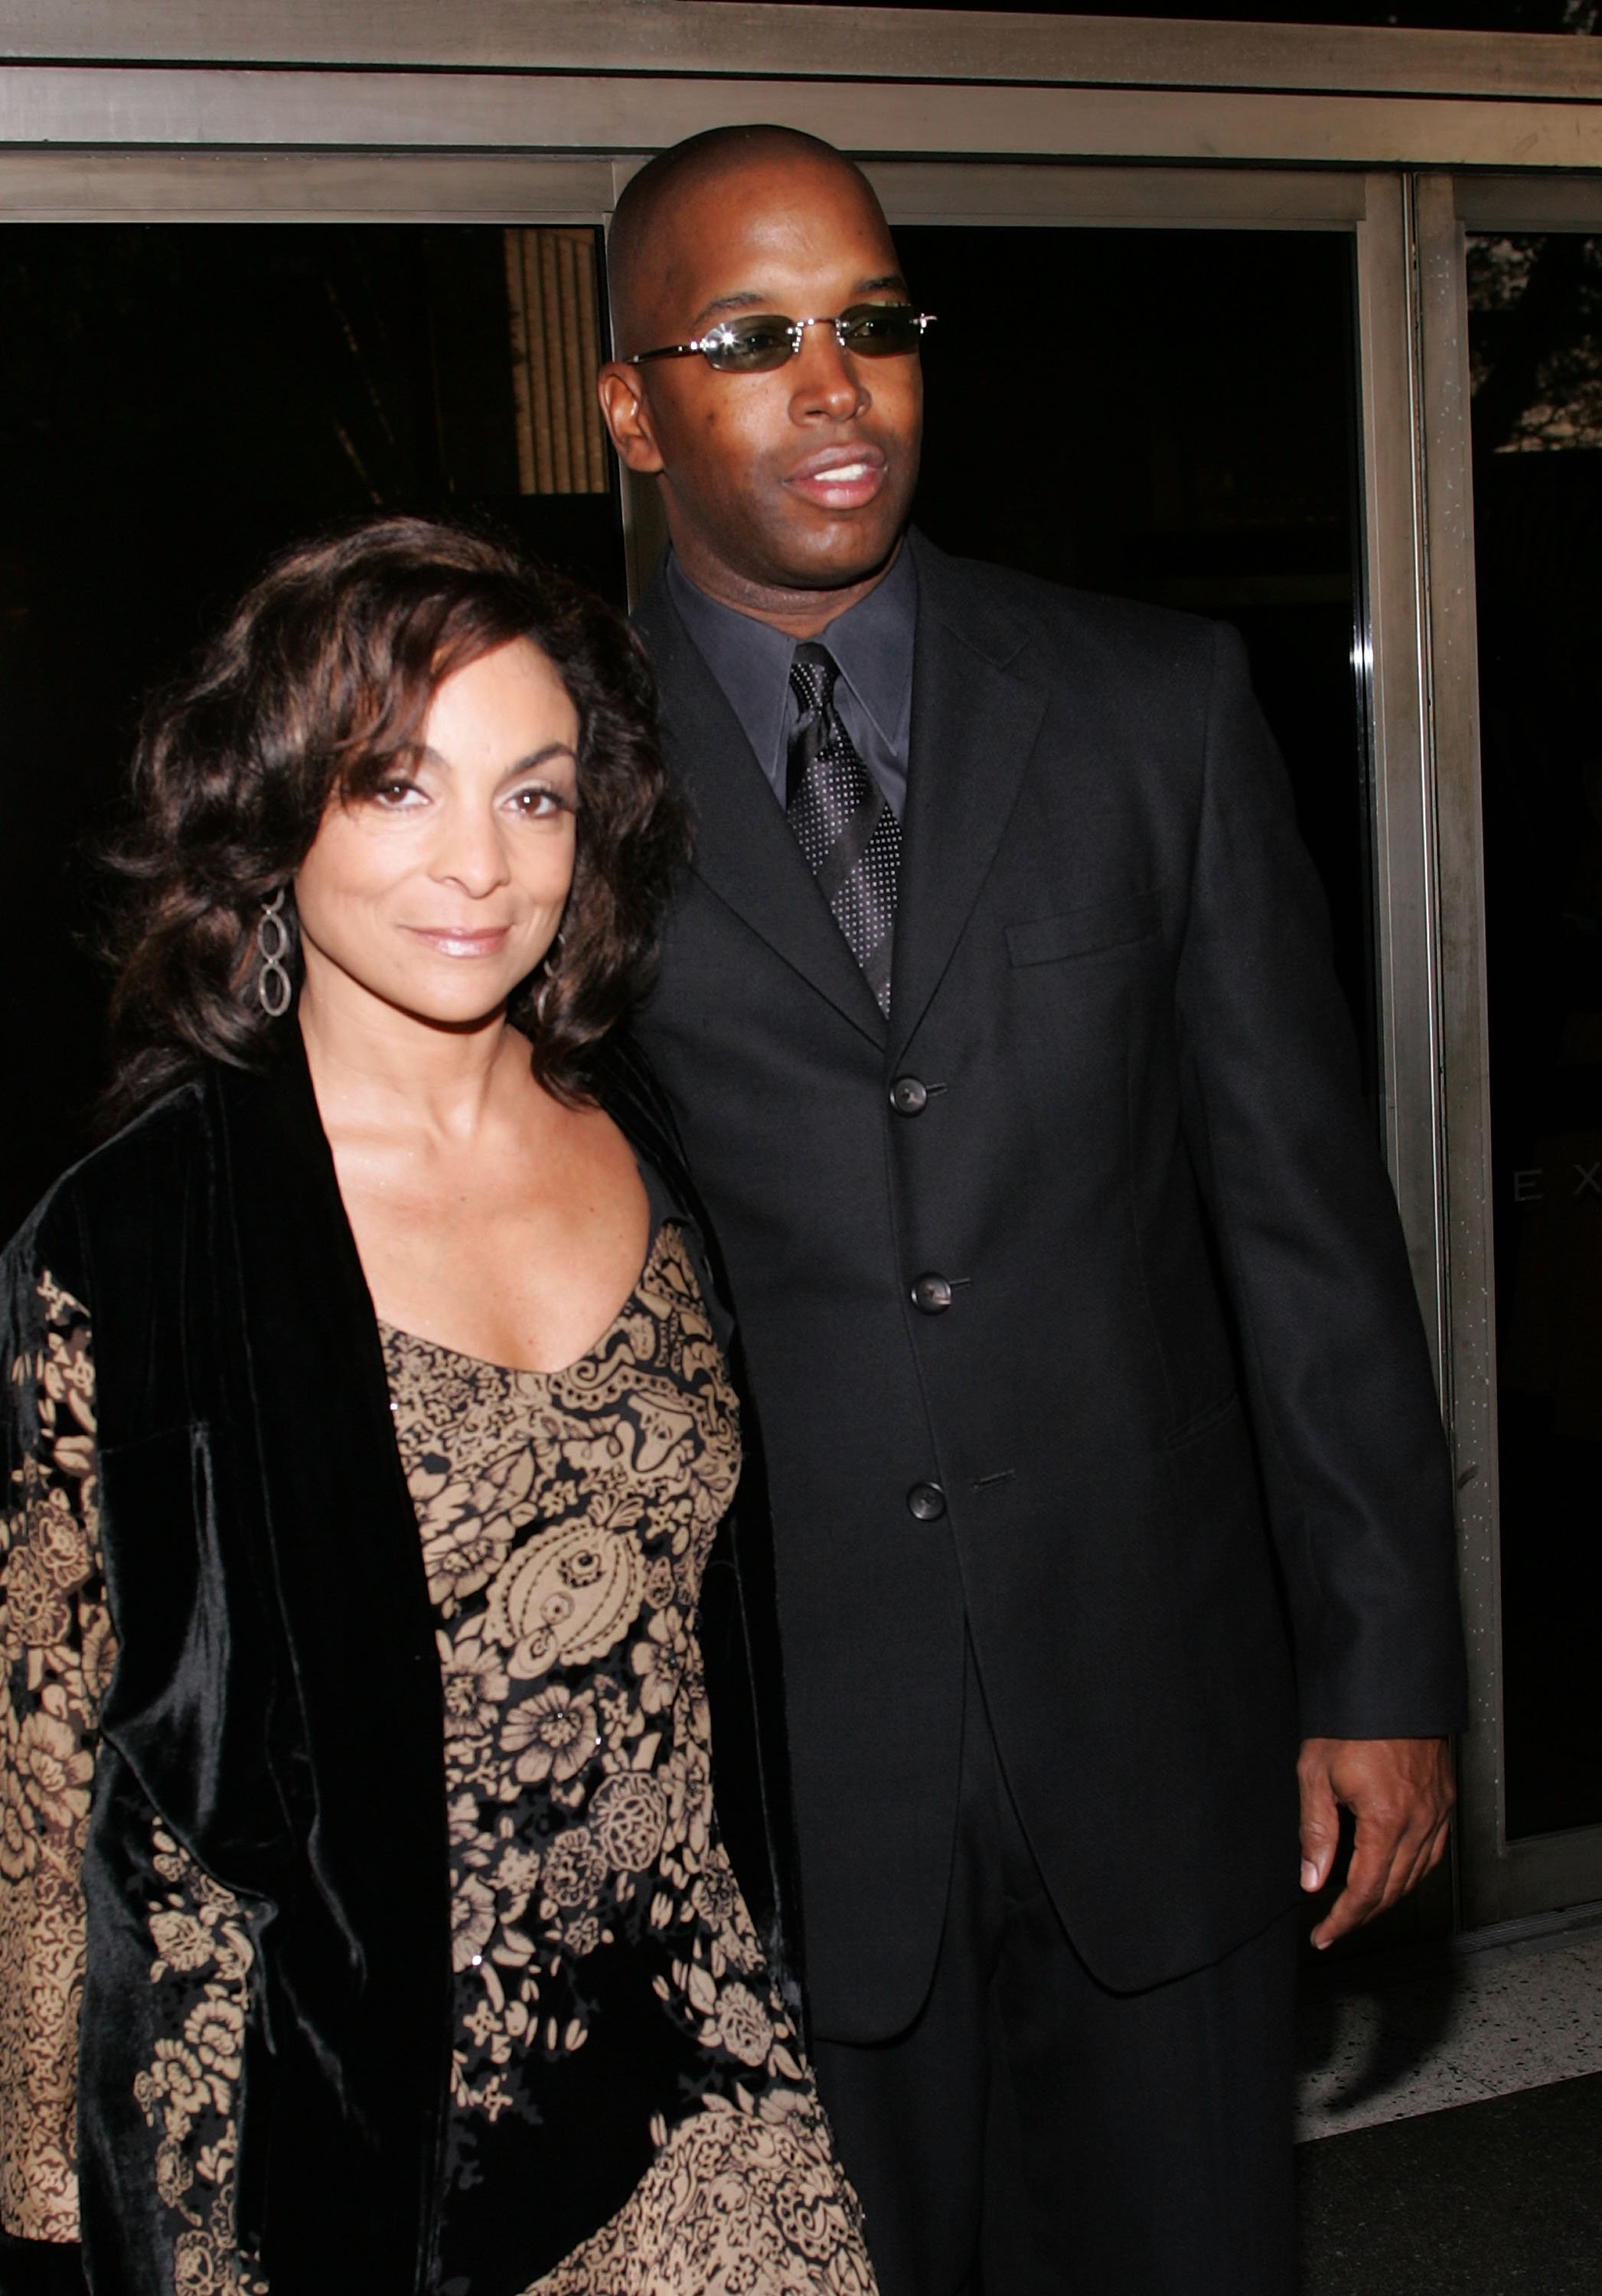 Jasmine Guy & Terrence Duckett at the NAACP Image Awards on March 19, 2005 in California | Photo: Getty Images